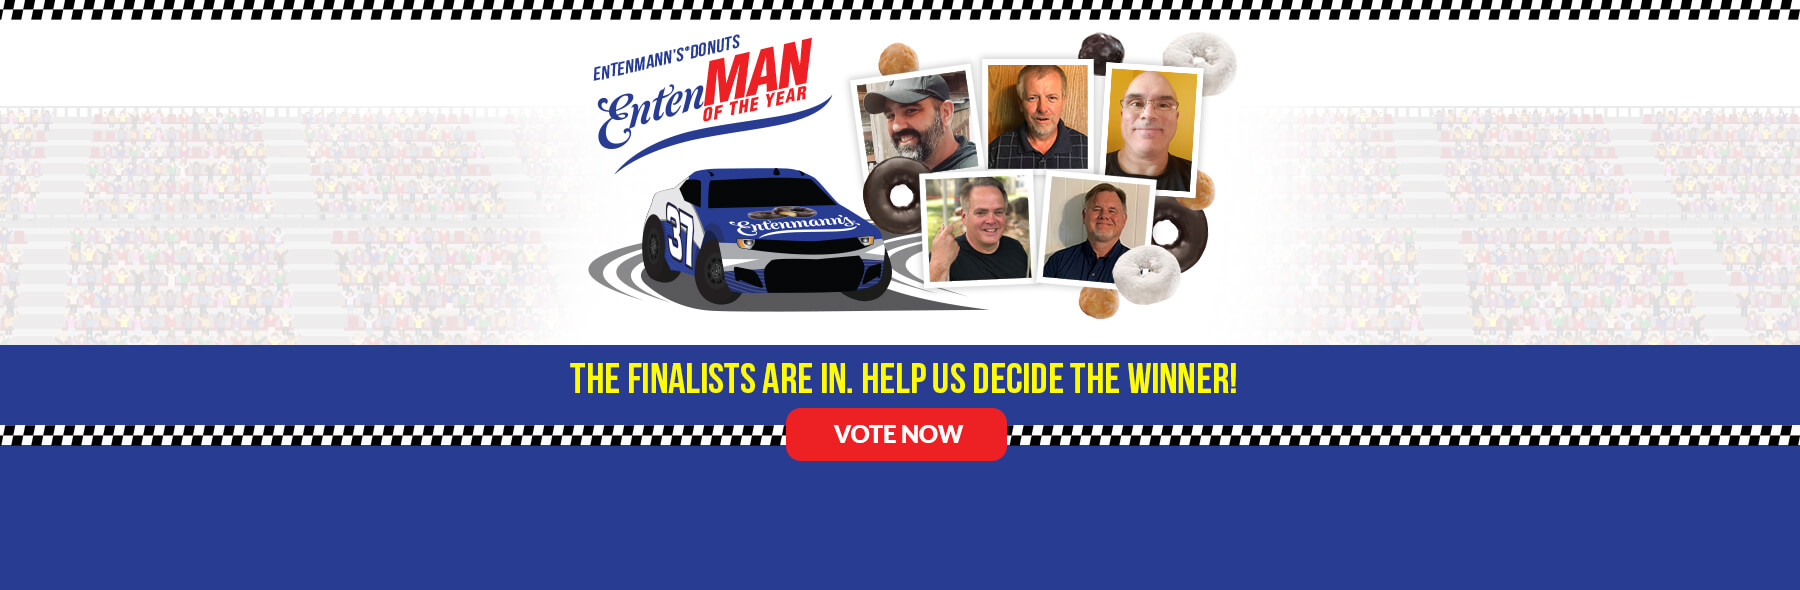 Man Of the Year Vote